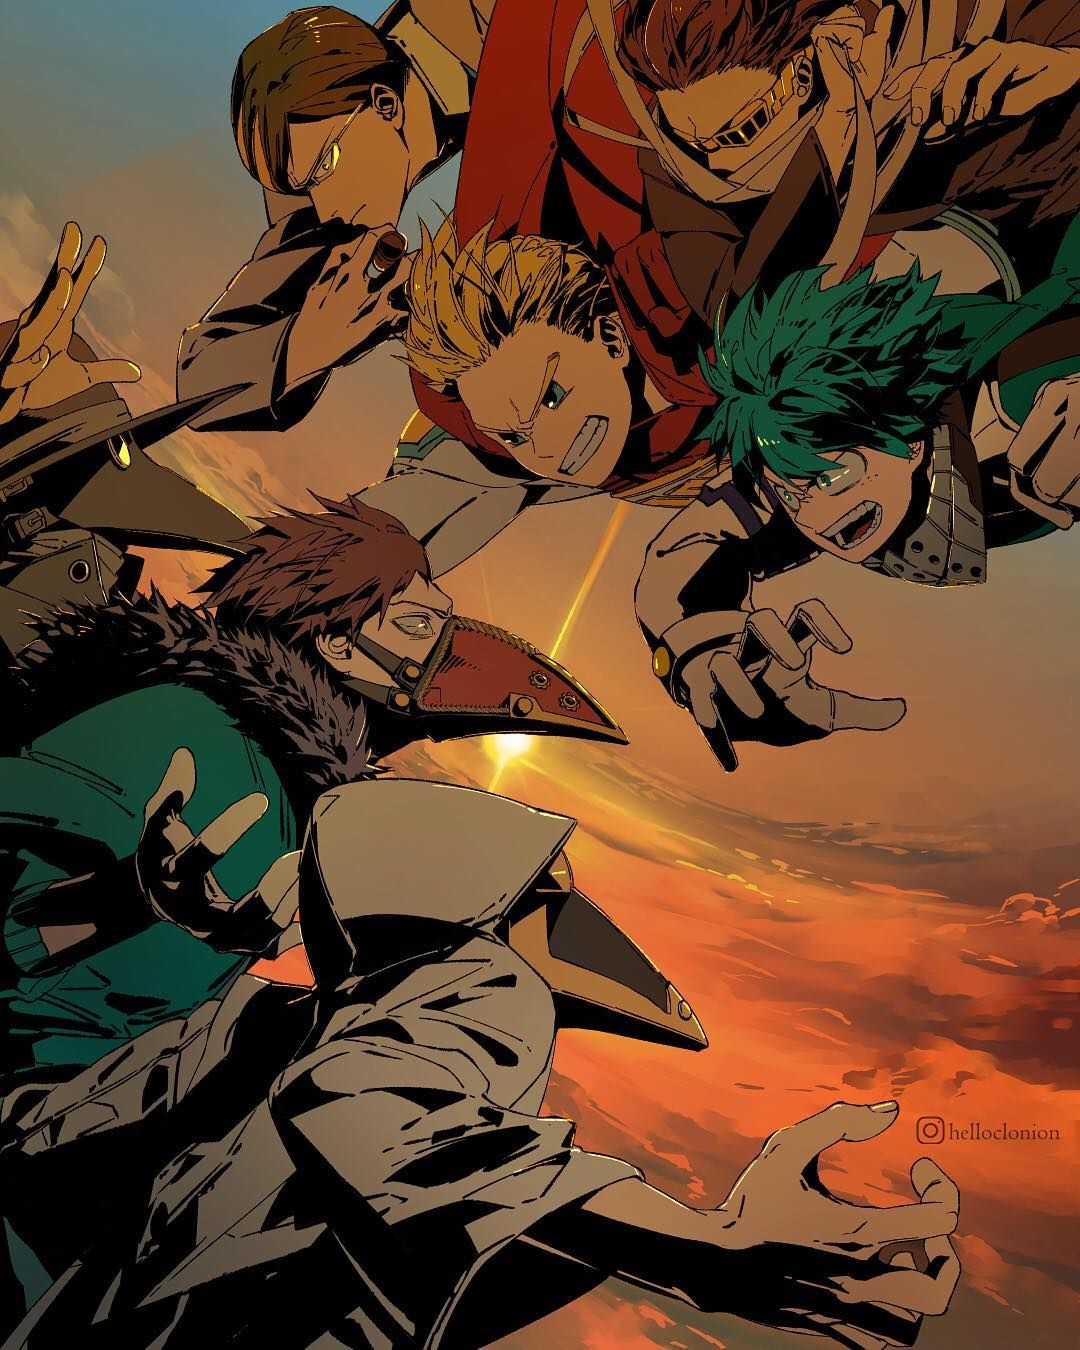 I M So Excited For My Hero Academia Season 4 Here S Something I Drew To Release Some Of The Hype Inside Me The V Hero Wallpaper My Hero Boku No Hero Academia